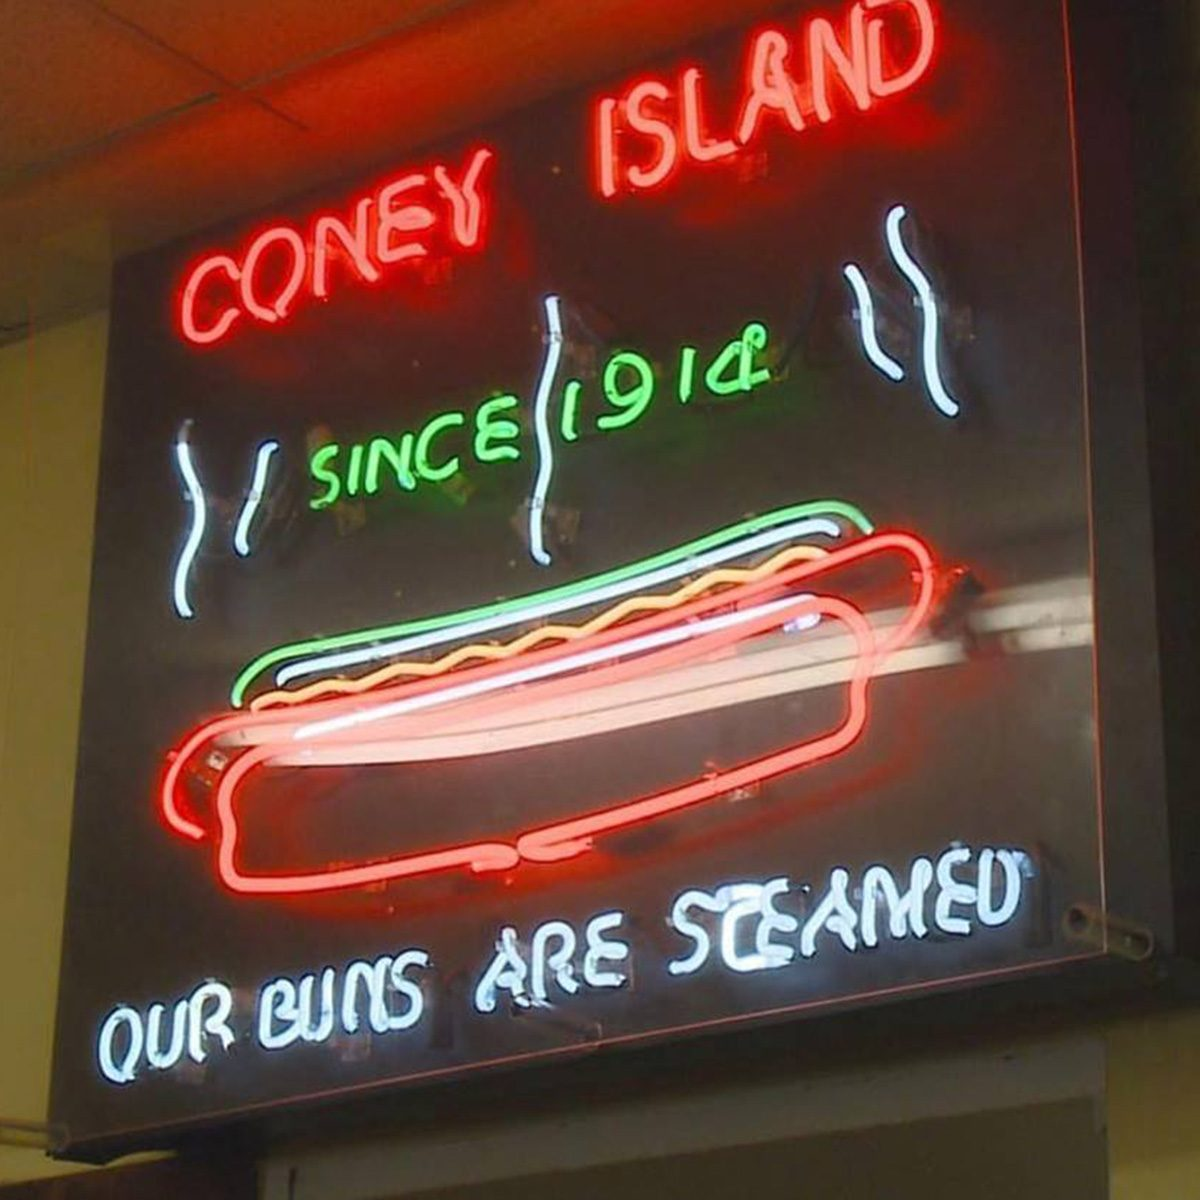 Fort Wayne Famous Coney Island Wiener Stand